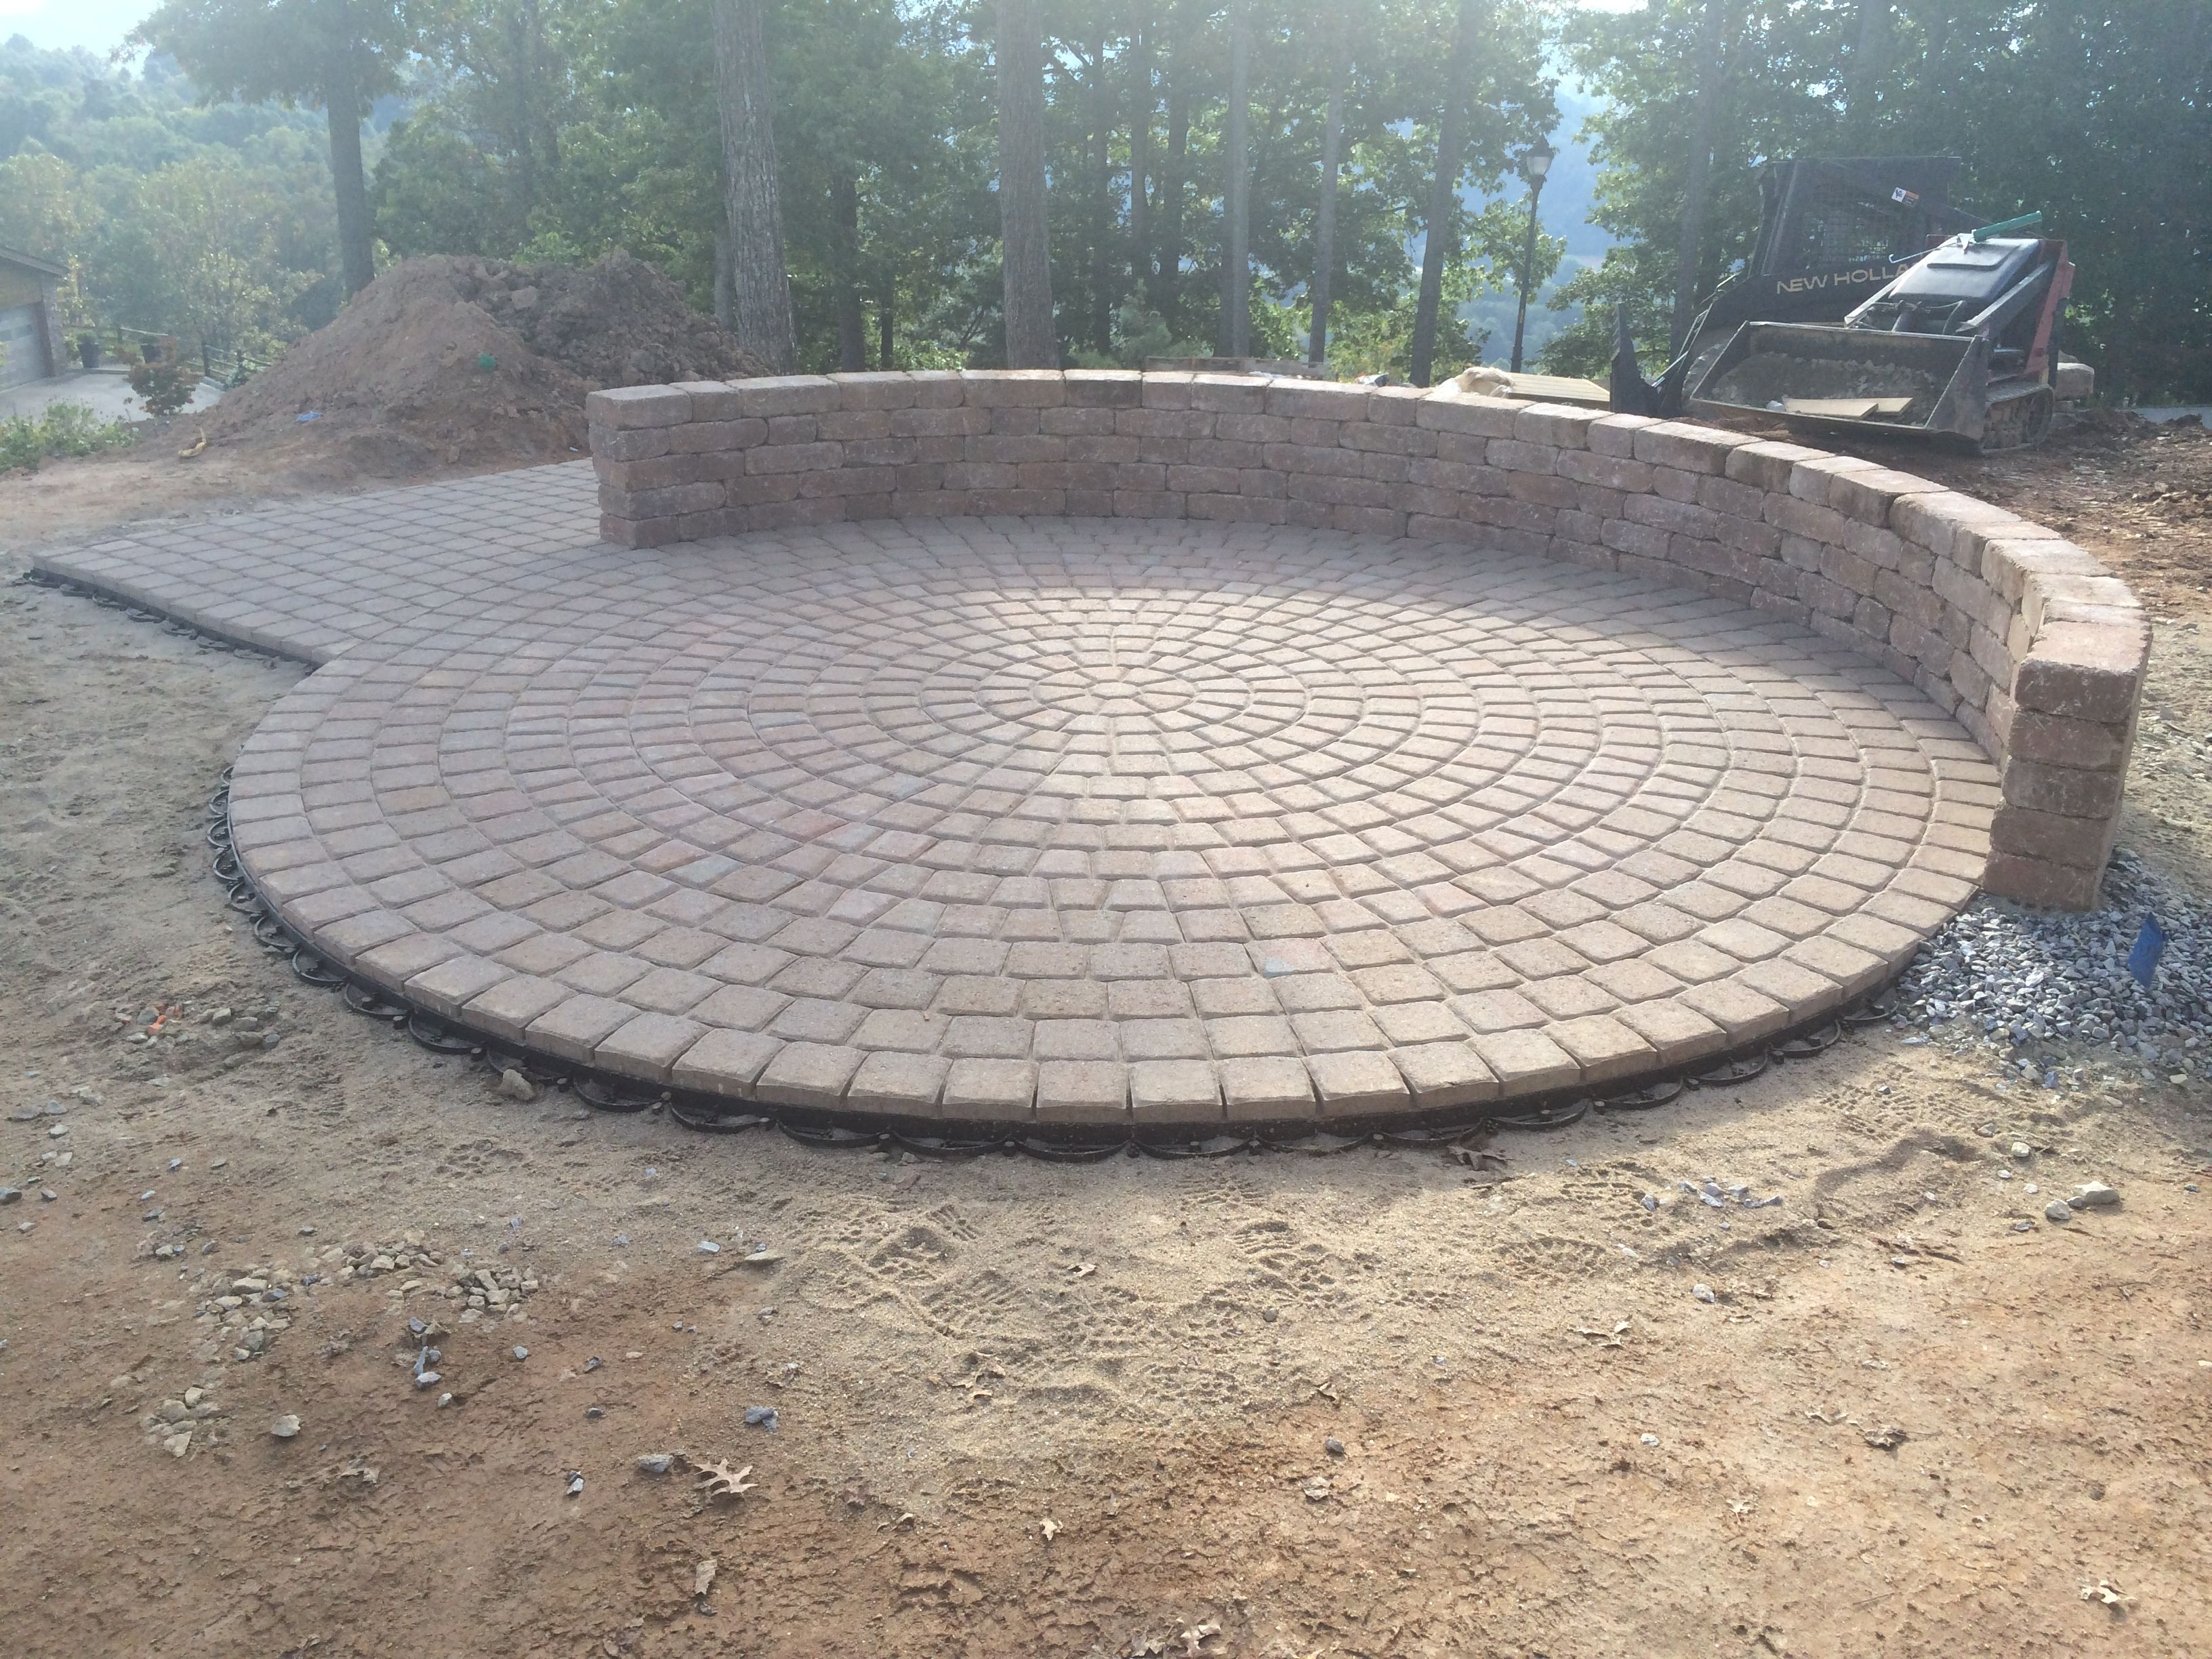 Attrayant A Circle Shaped Concrete Paver Patio, With Attached Semi Circular Seating  Wall. By